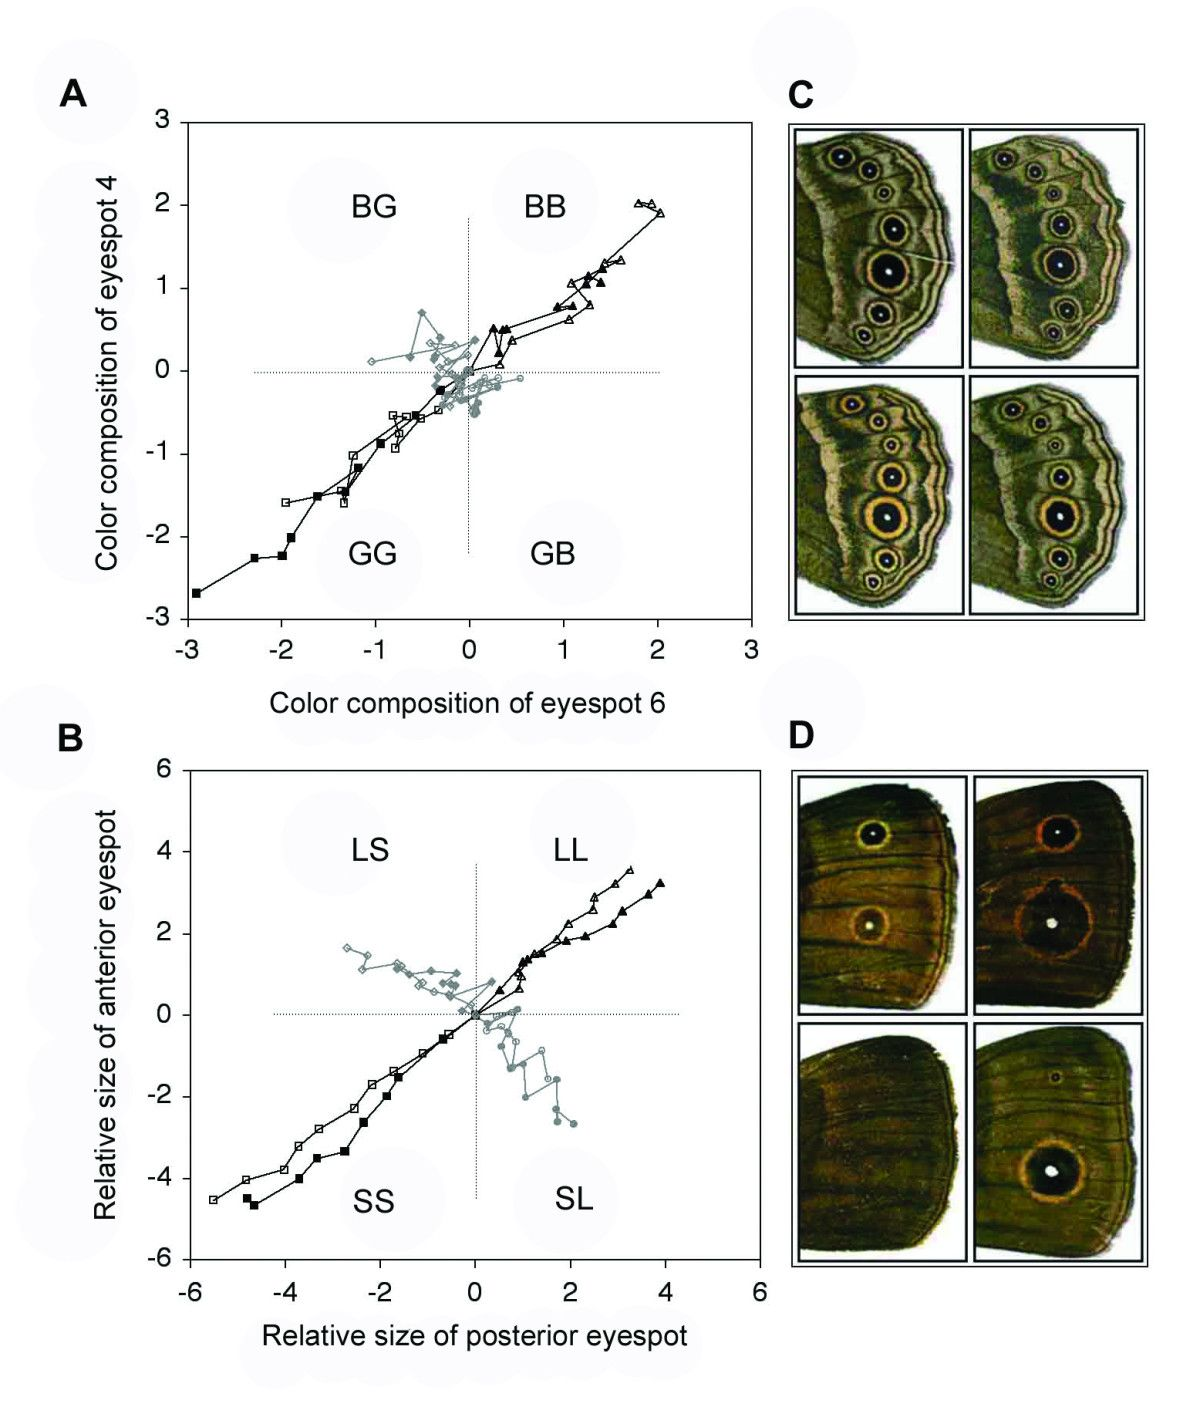 Butterfly eyespot color and size morphospaces